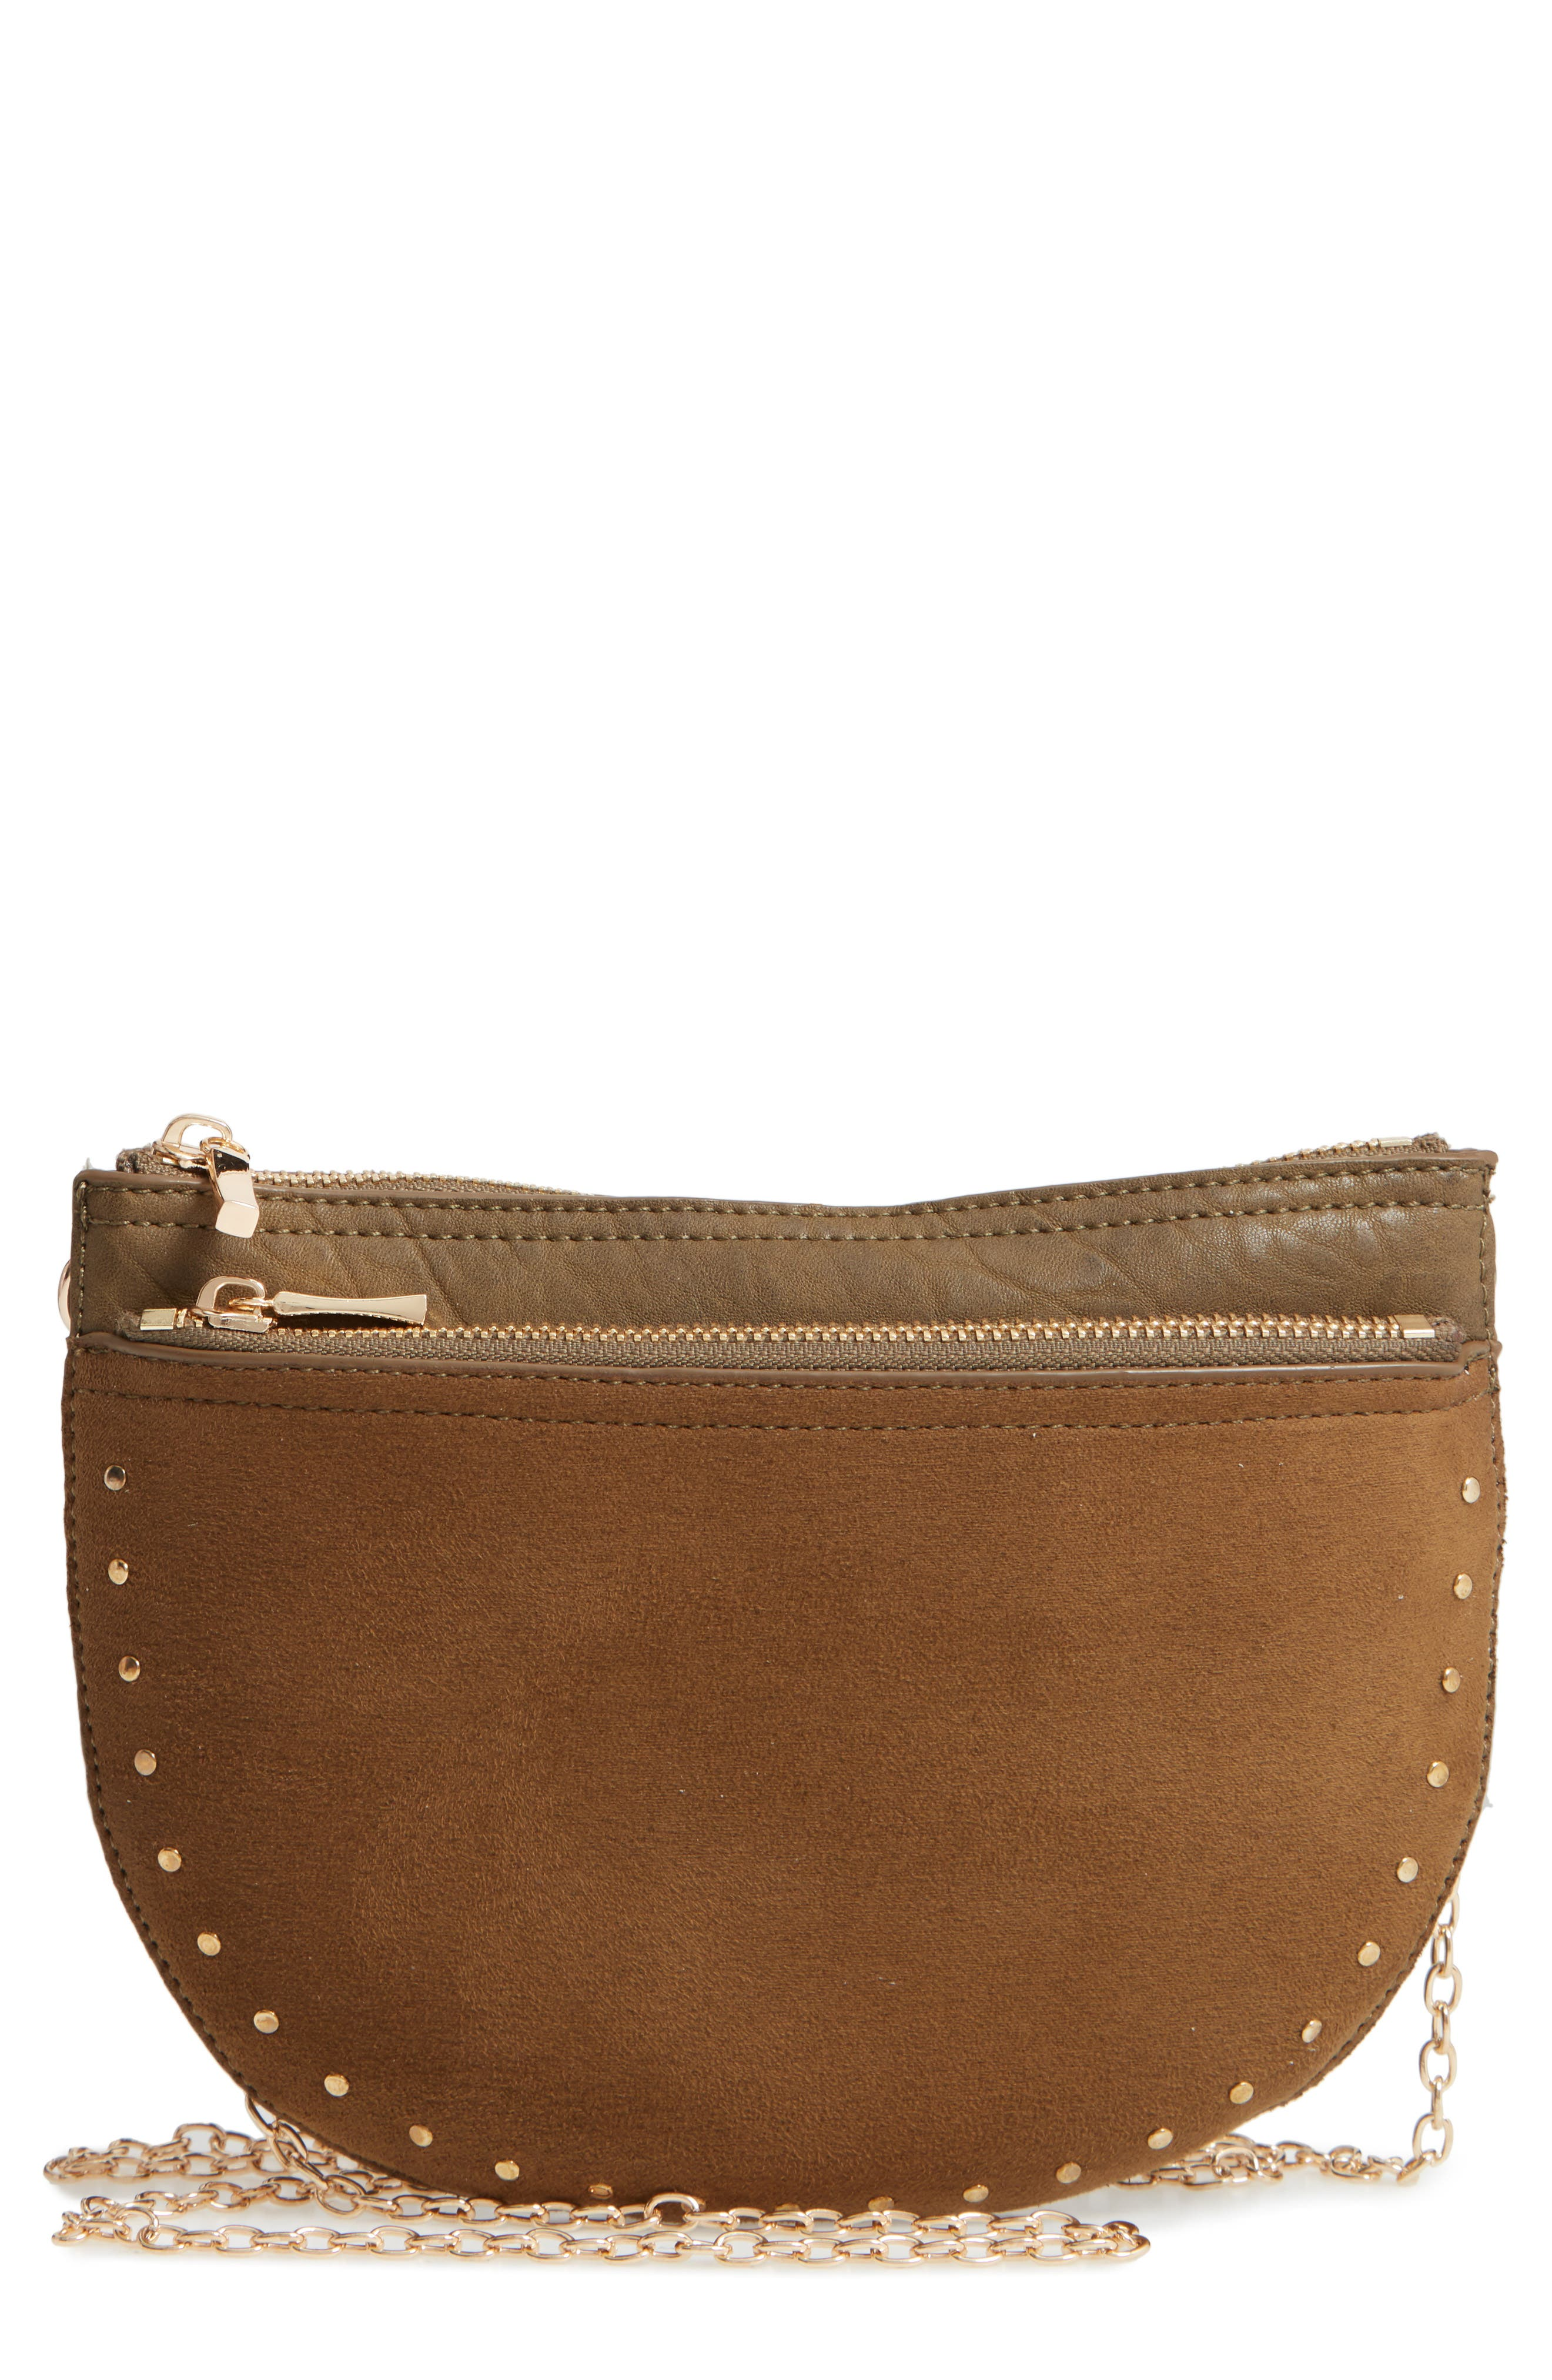 SOLE SOCIETY, Jeana Studded Convertible Belt Bag, Main thumbnail 1, color, OLIVE